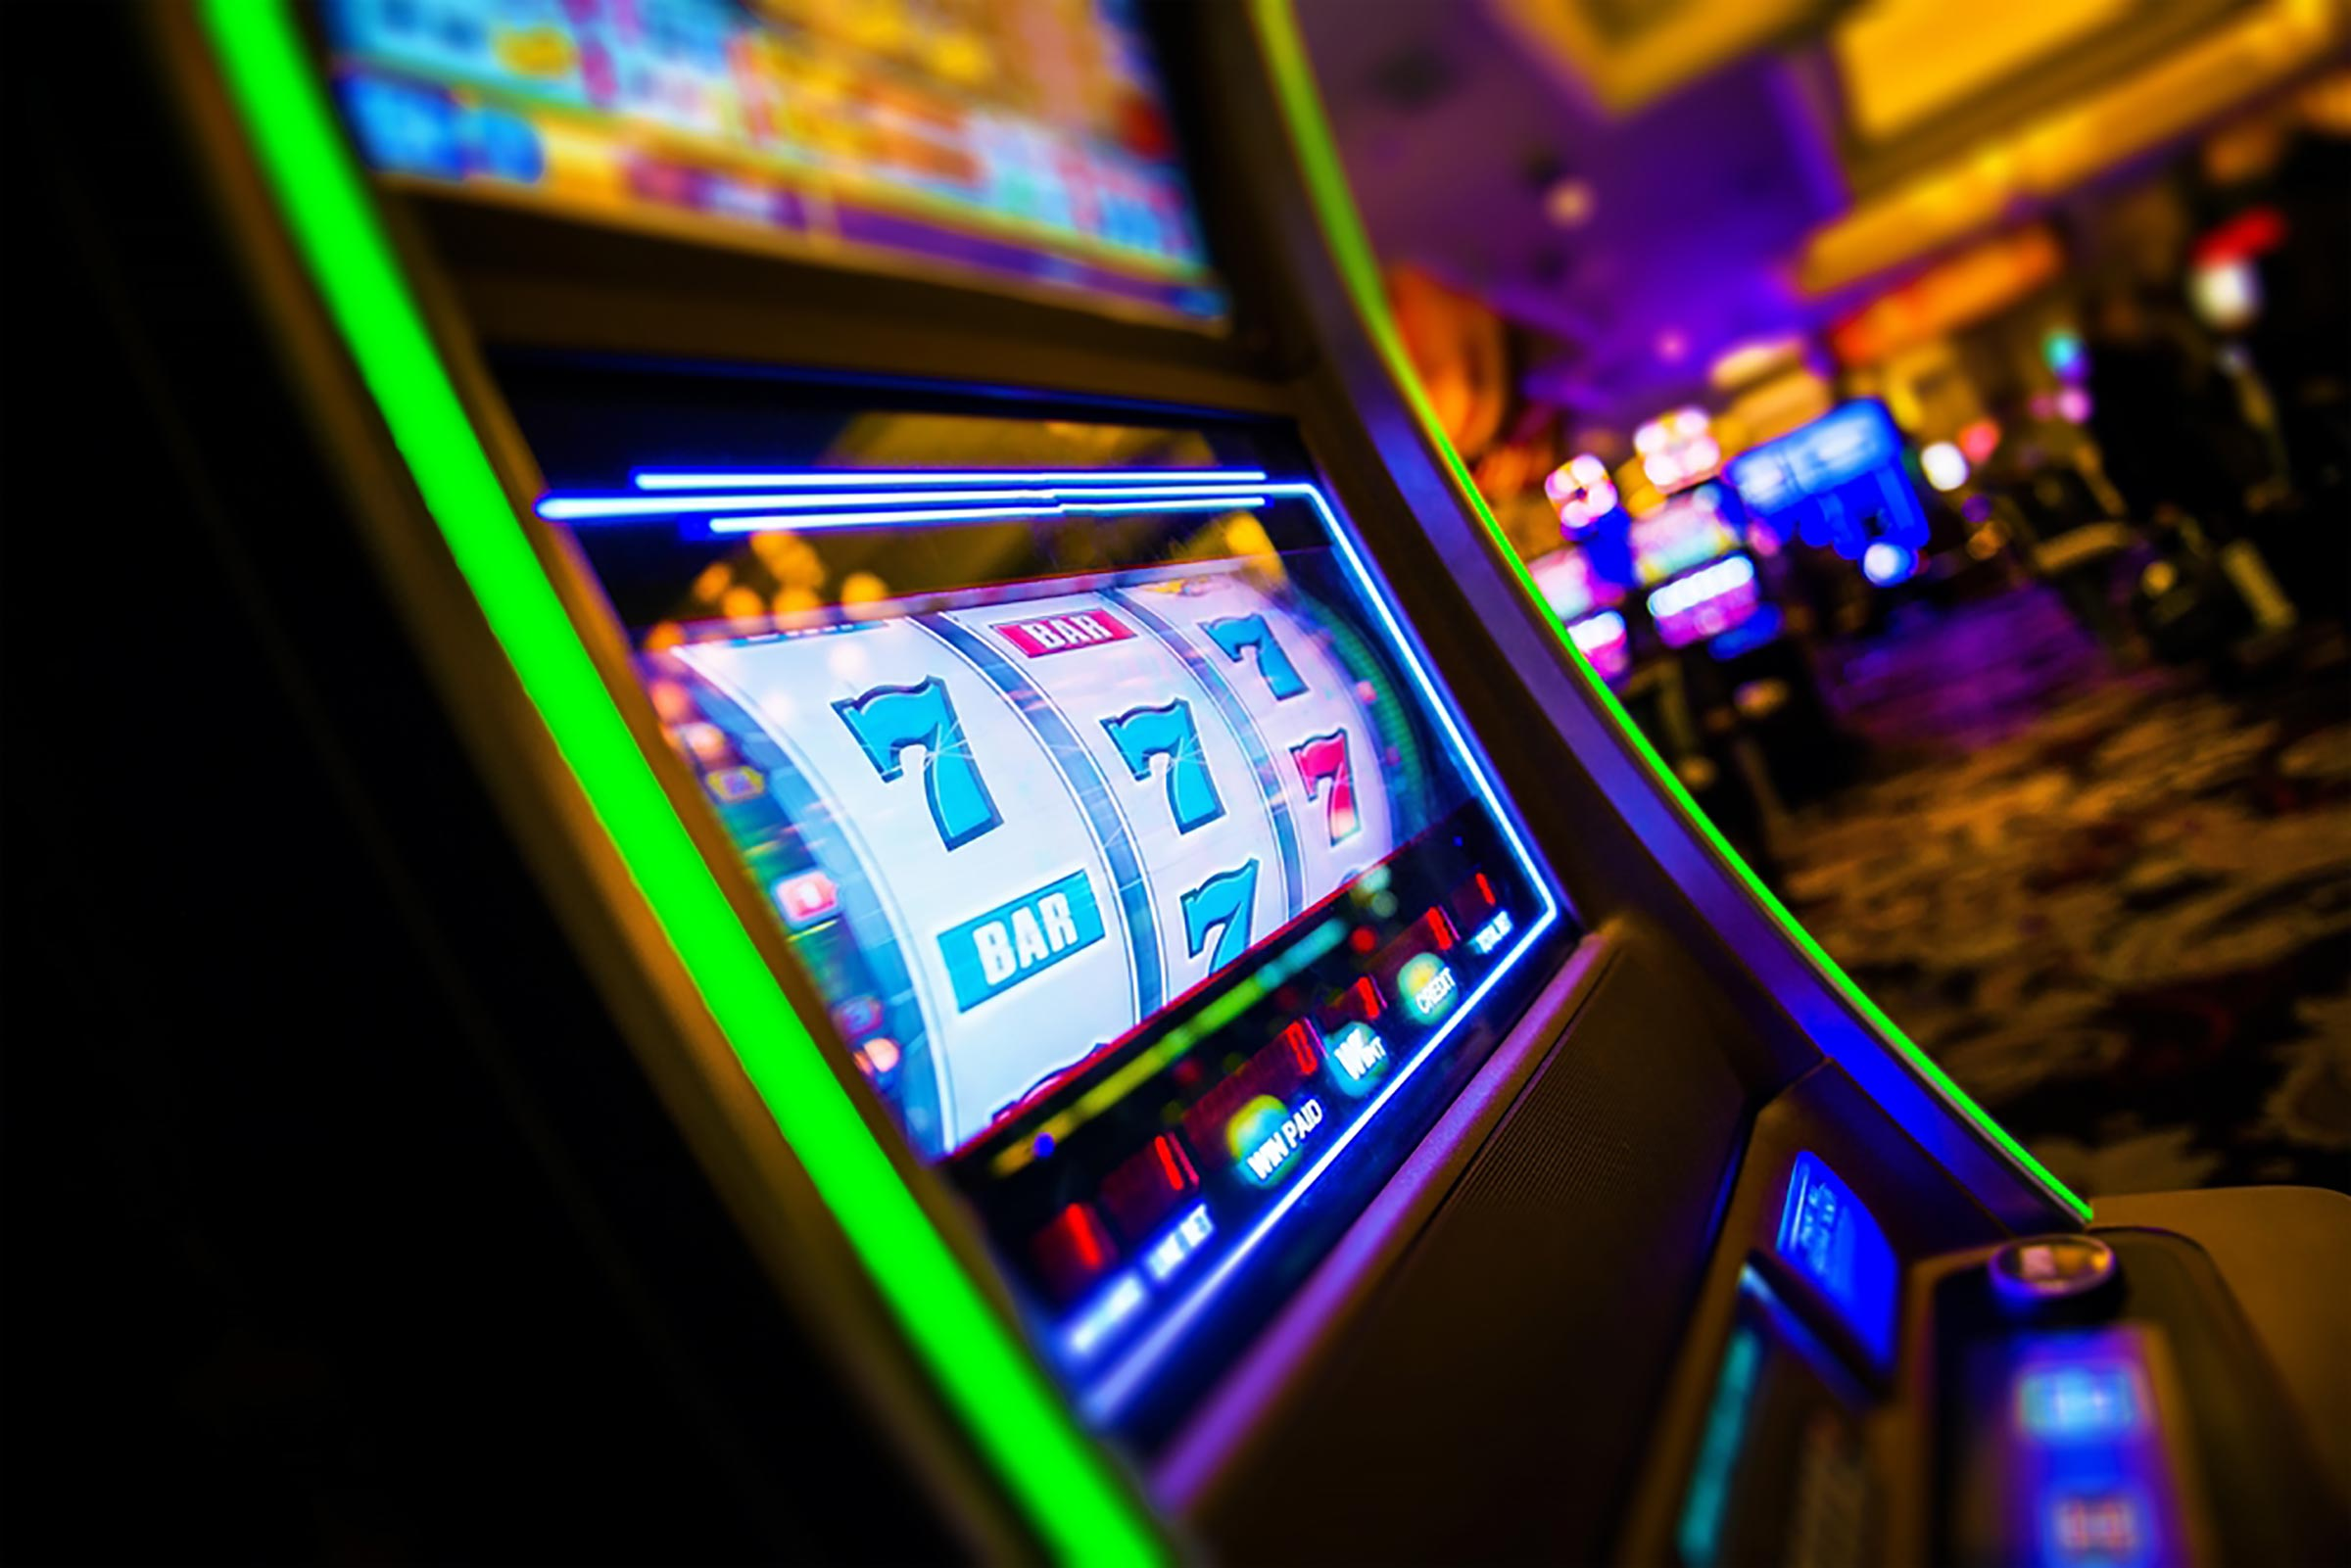 traditional 3-reel slot machines